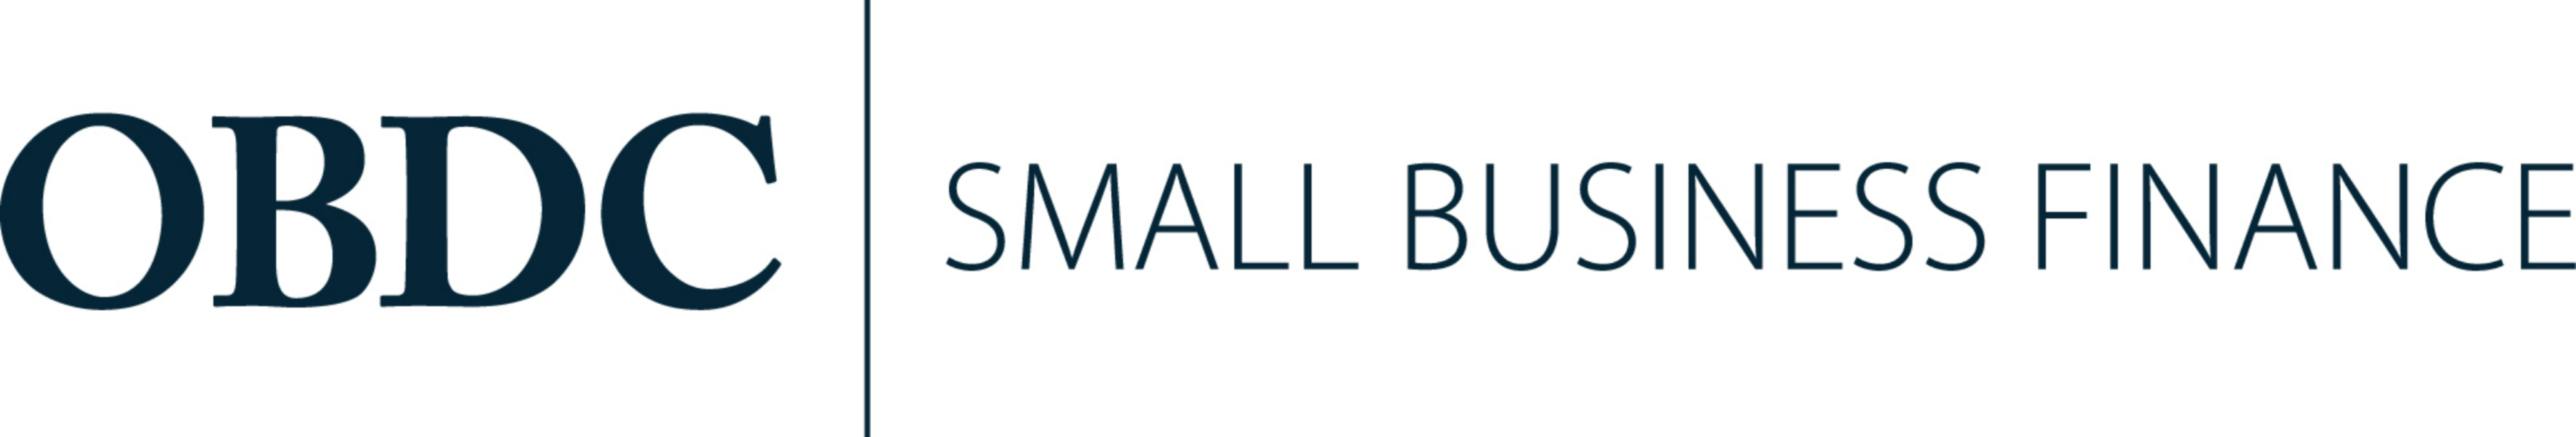 OBDC Small Business Finance Logo